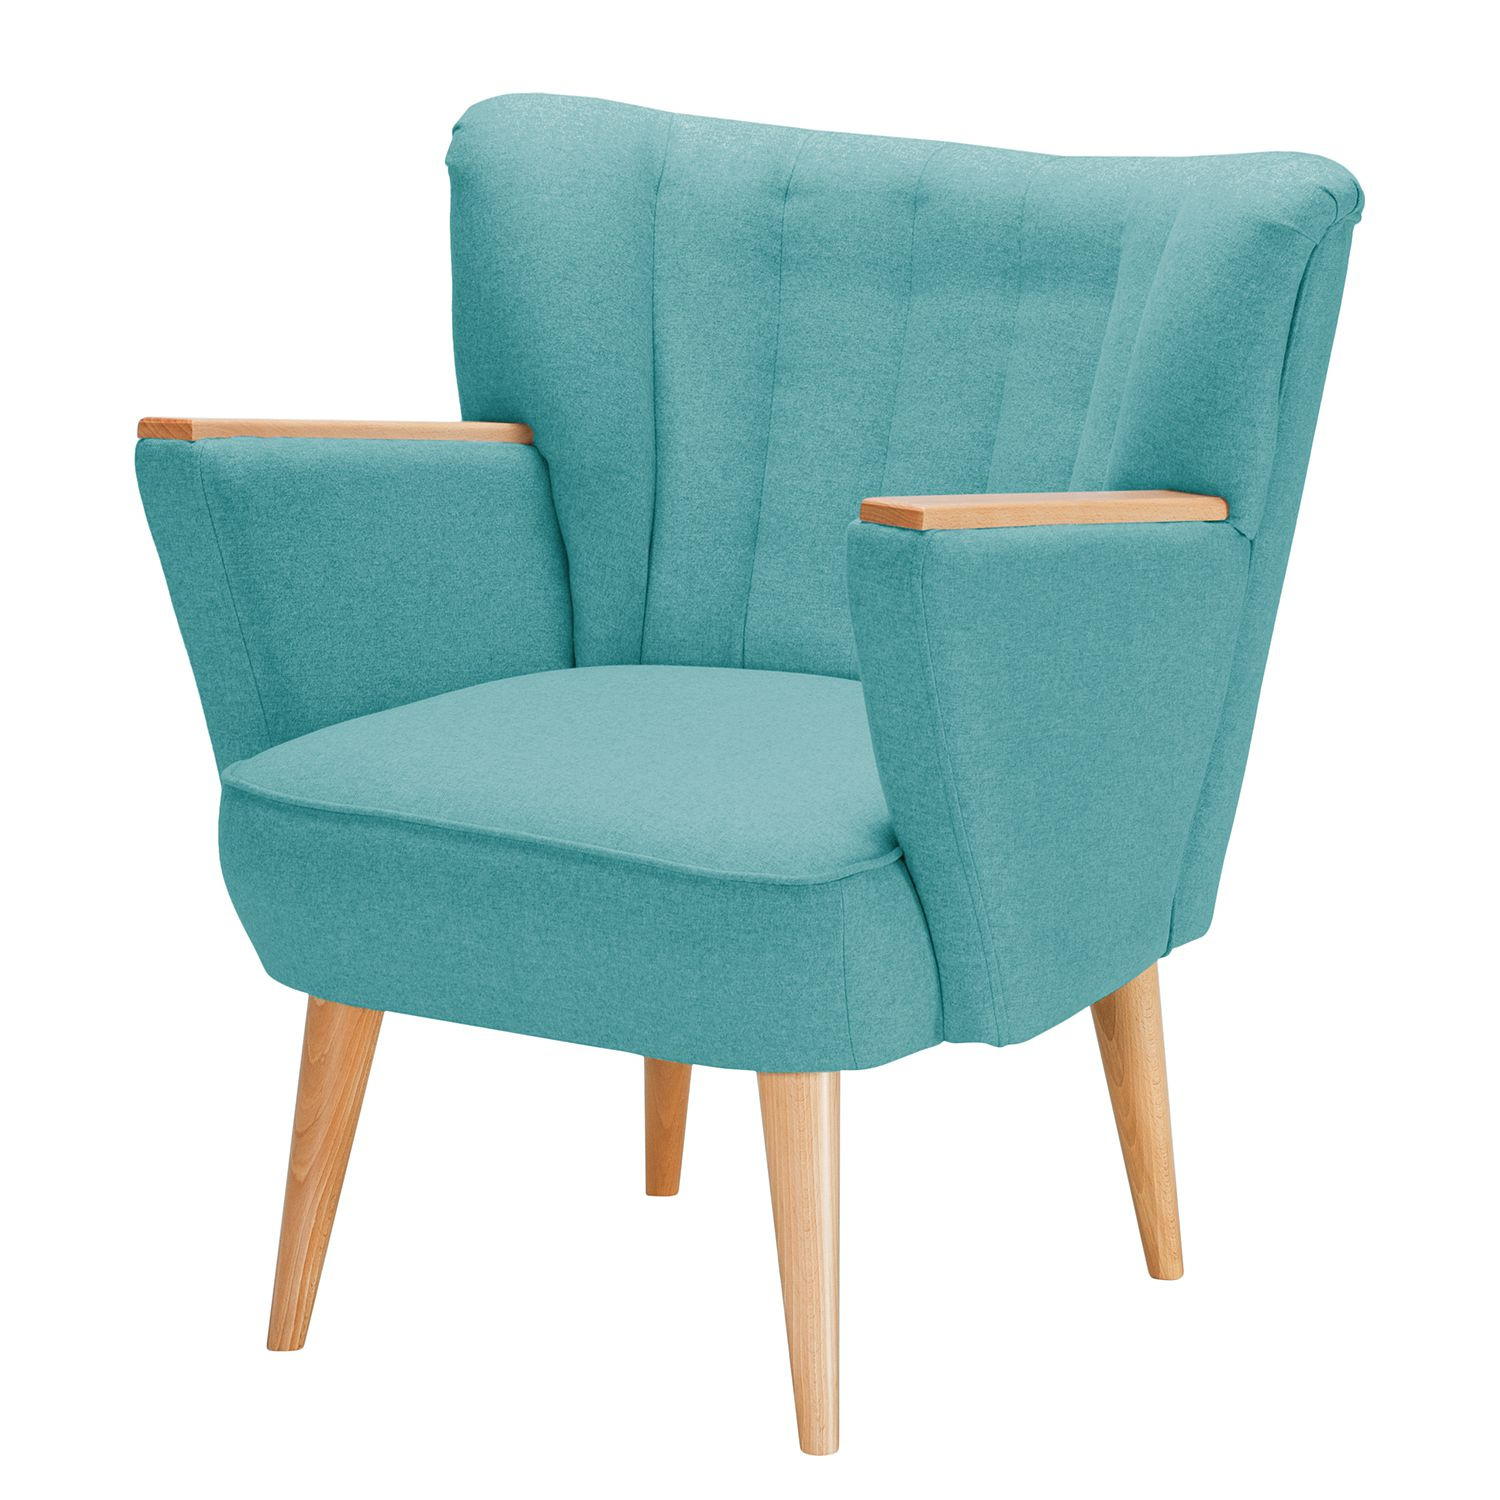 Fauteuil Bauro I - Feutre - Turquoise, Morteens